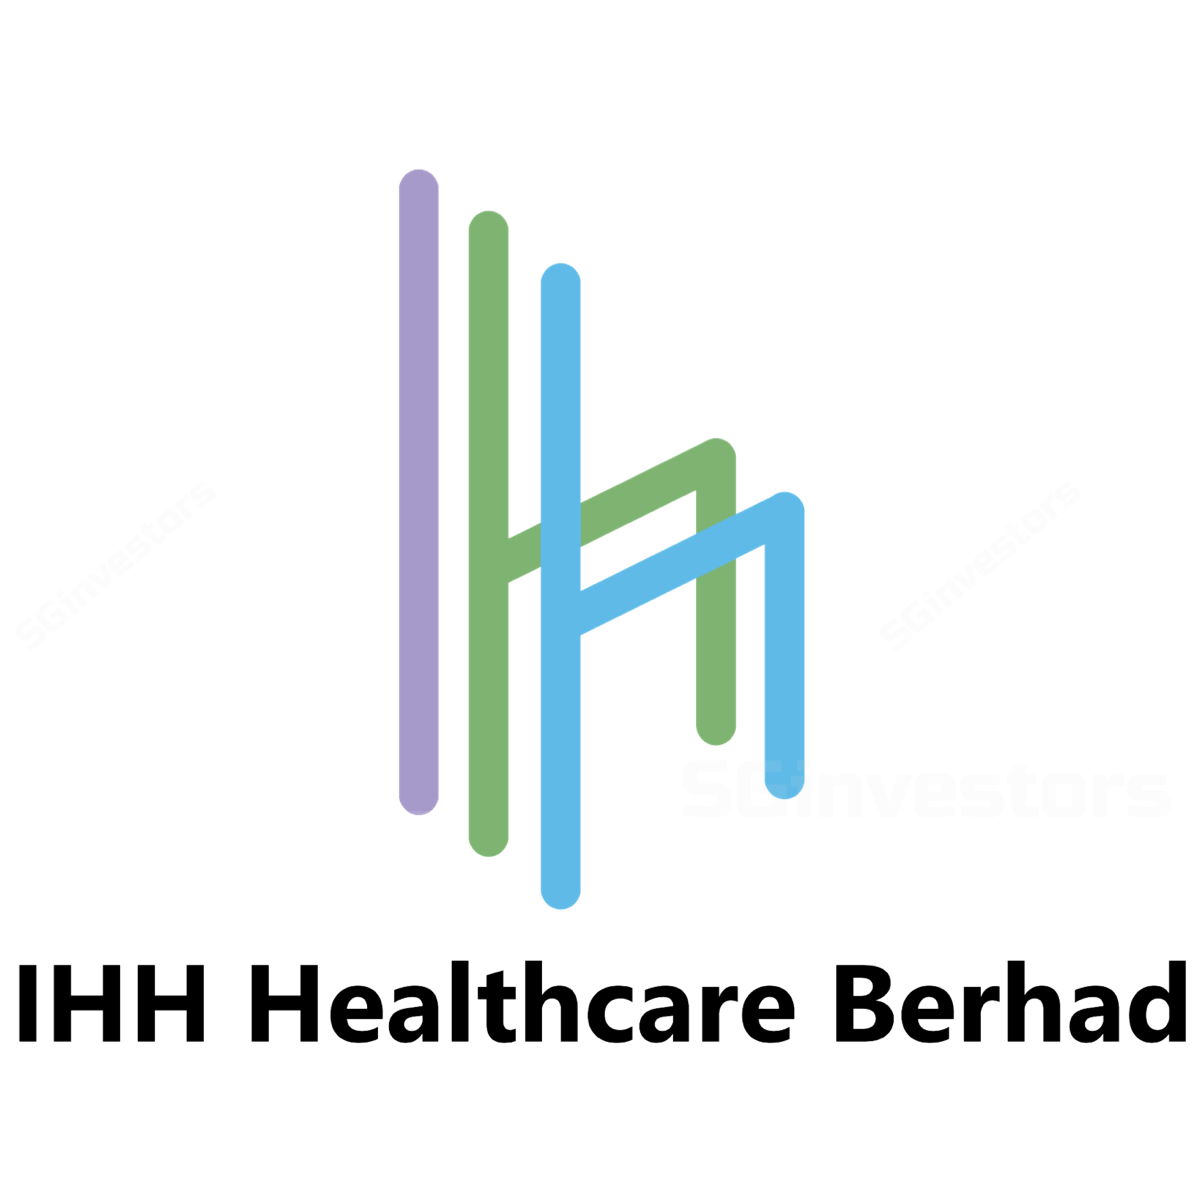 IHH Healthcare (IHH SP) - UOB Kay Hian 2017-08-24: 1H17: Earnings Miss On High Start-up Costs